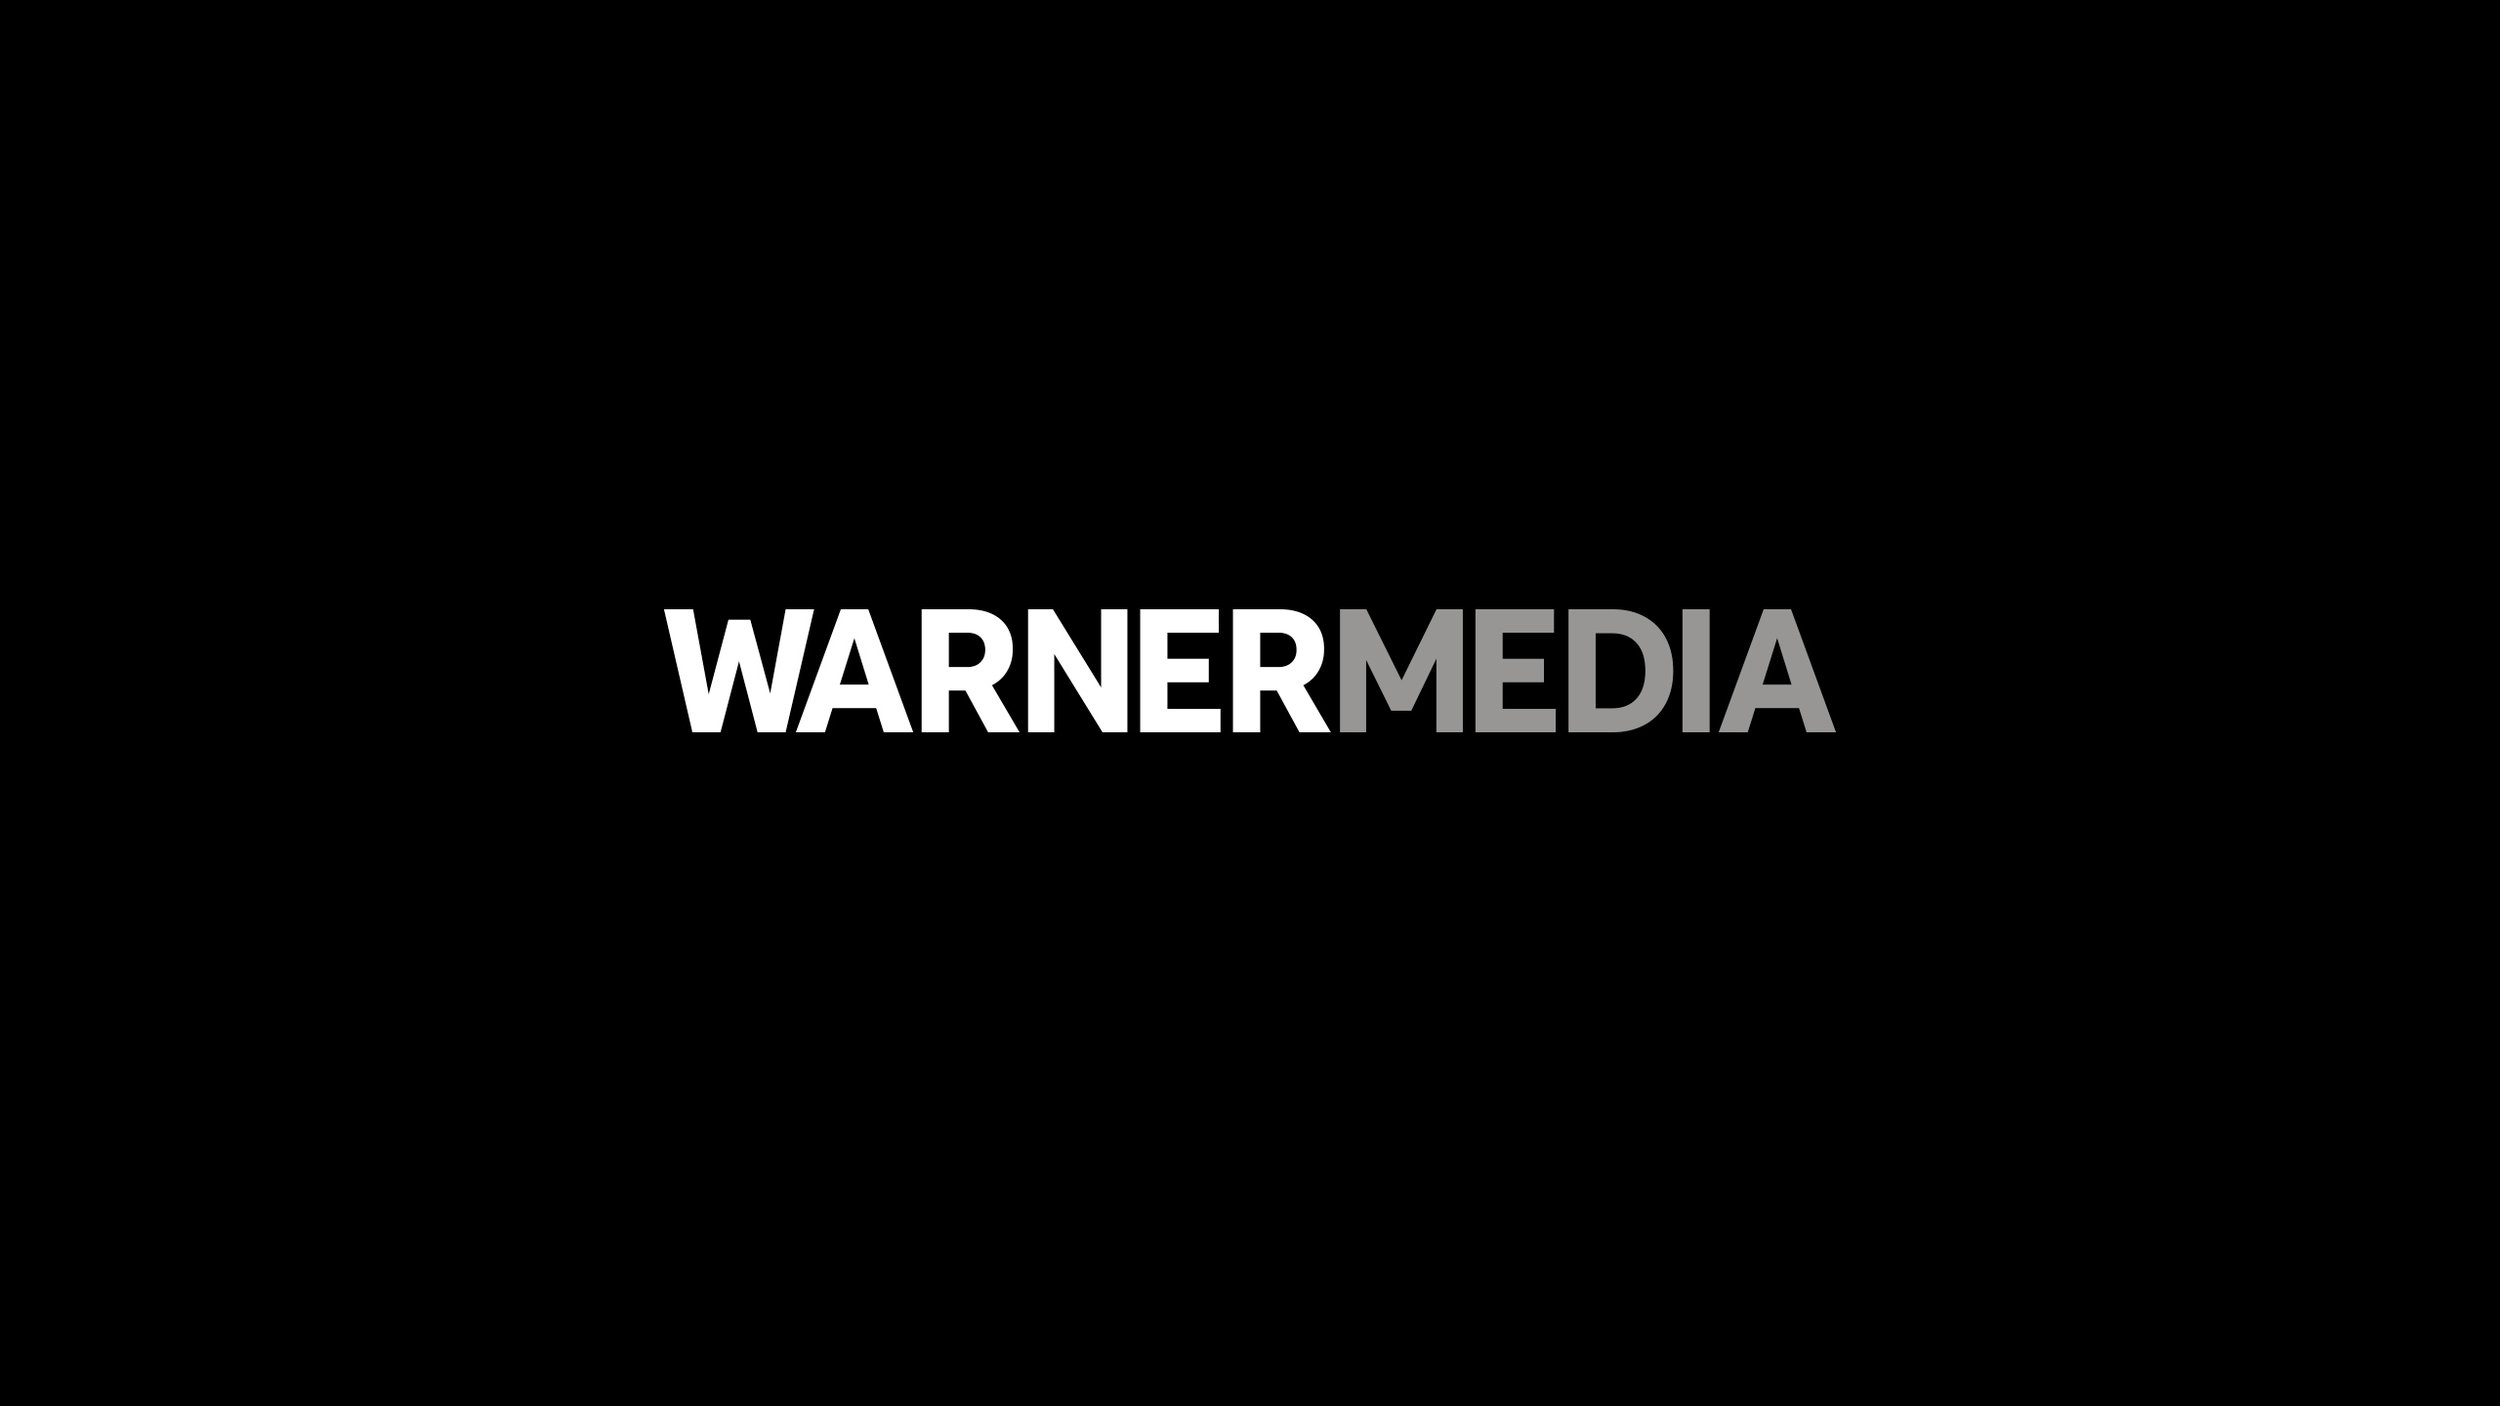 warnermedia-header.jpg